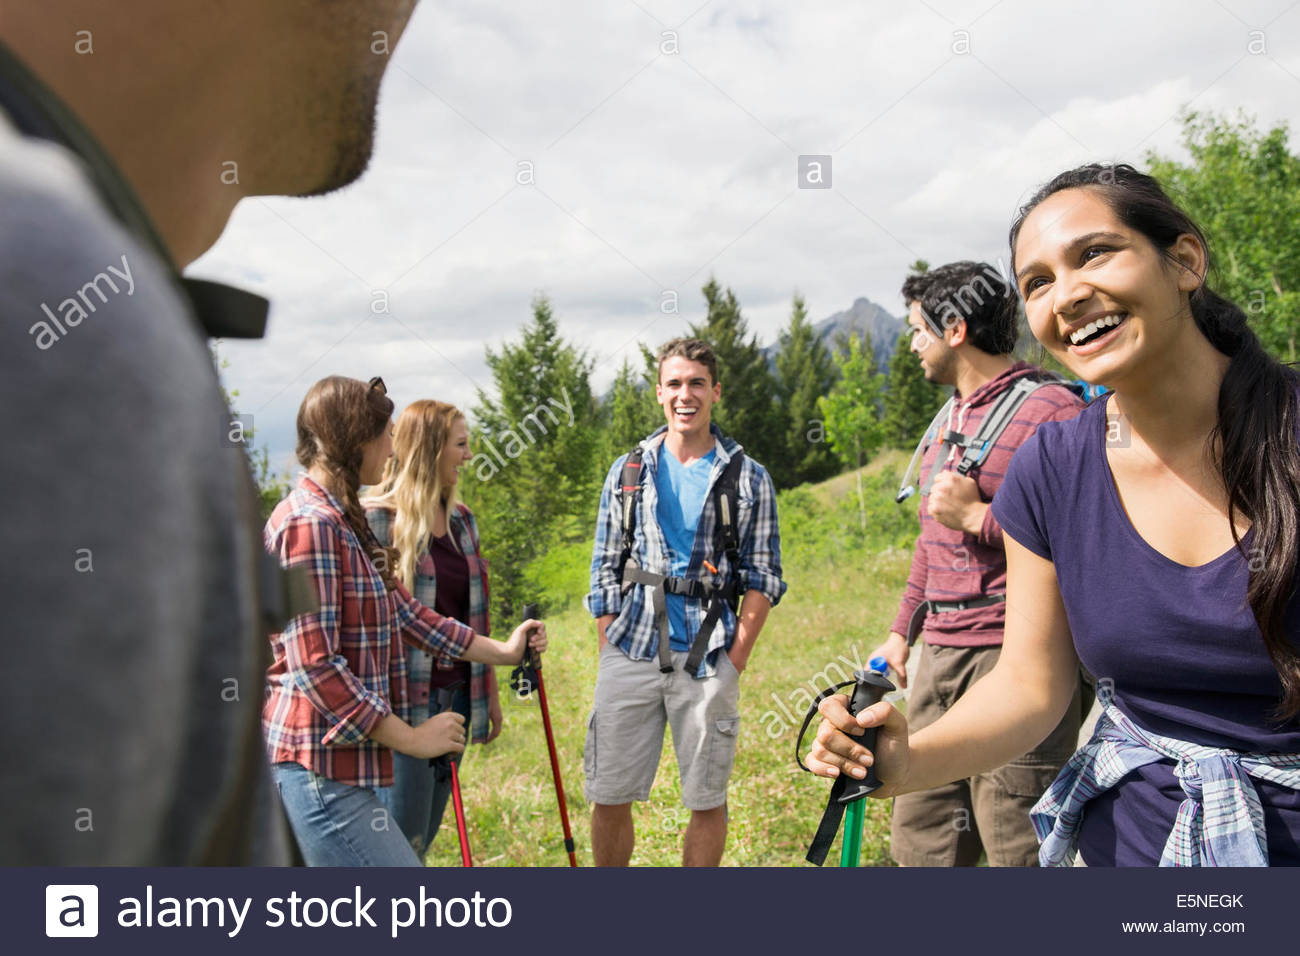 Friends hiking - Stock Image